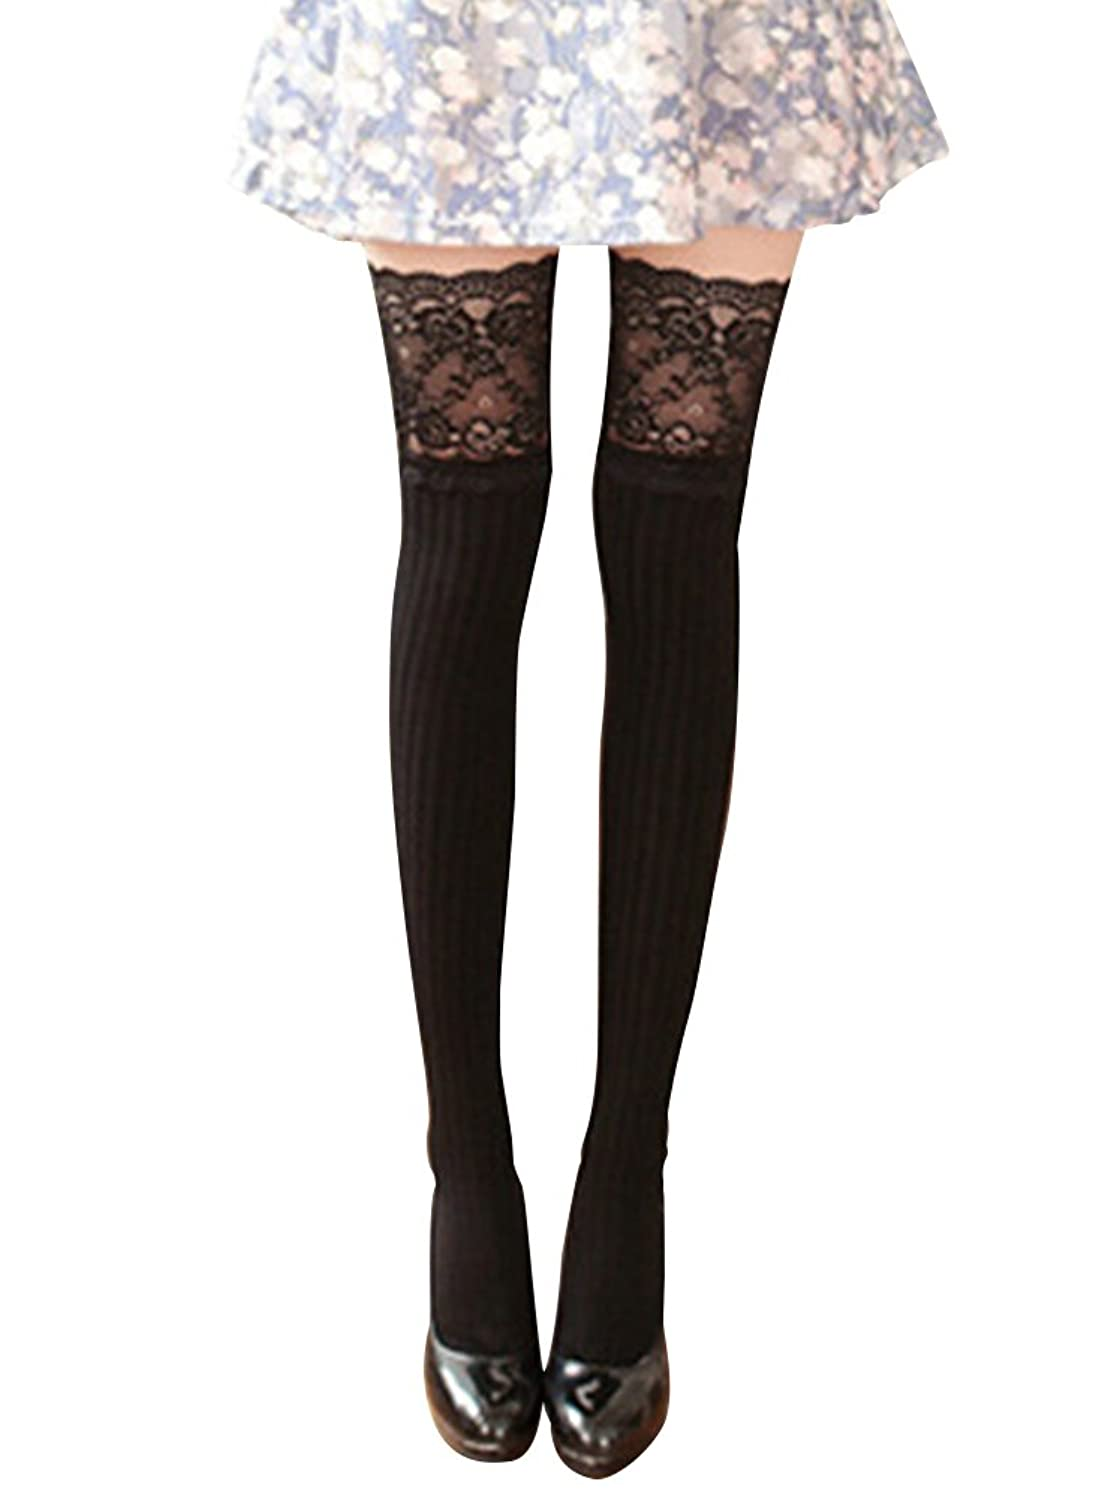 Steampunk Tights  & Socks Vertical Lace Cotton Knee High Tube Women Sexy Stockings $8.90 AT vintagedancer.com